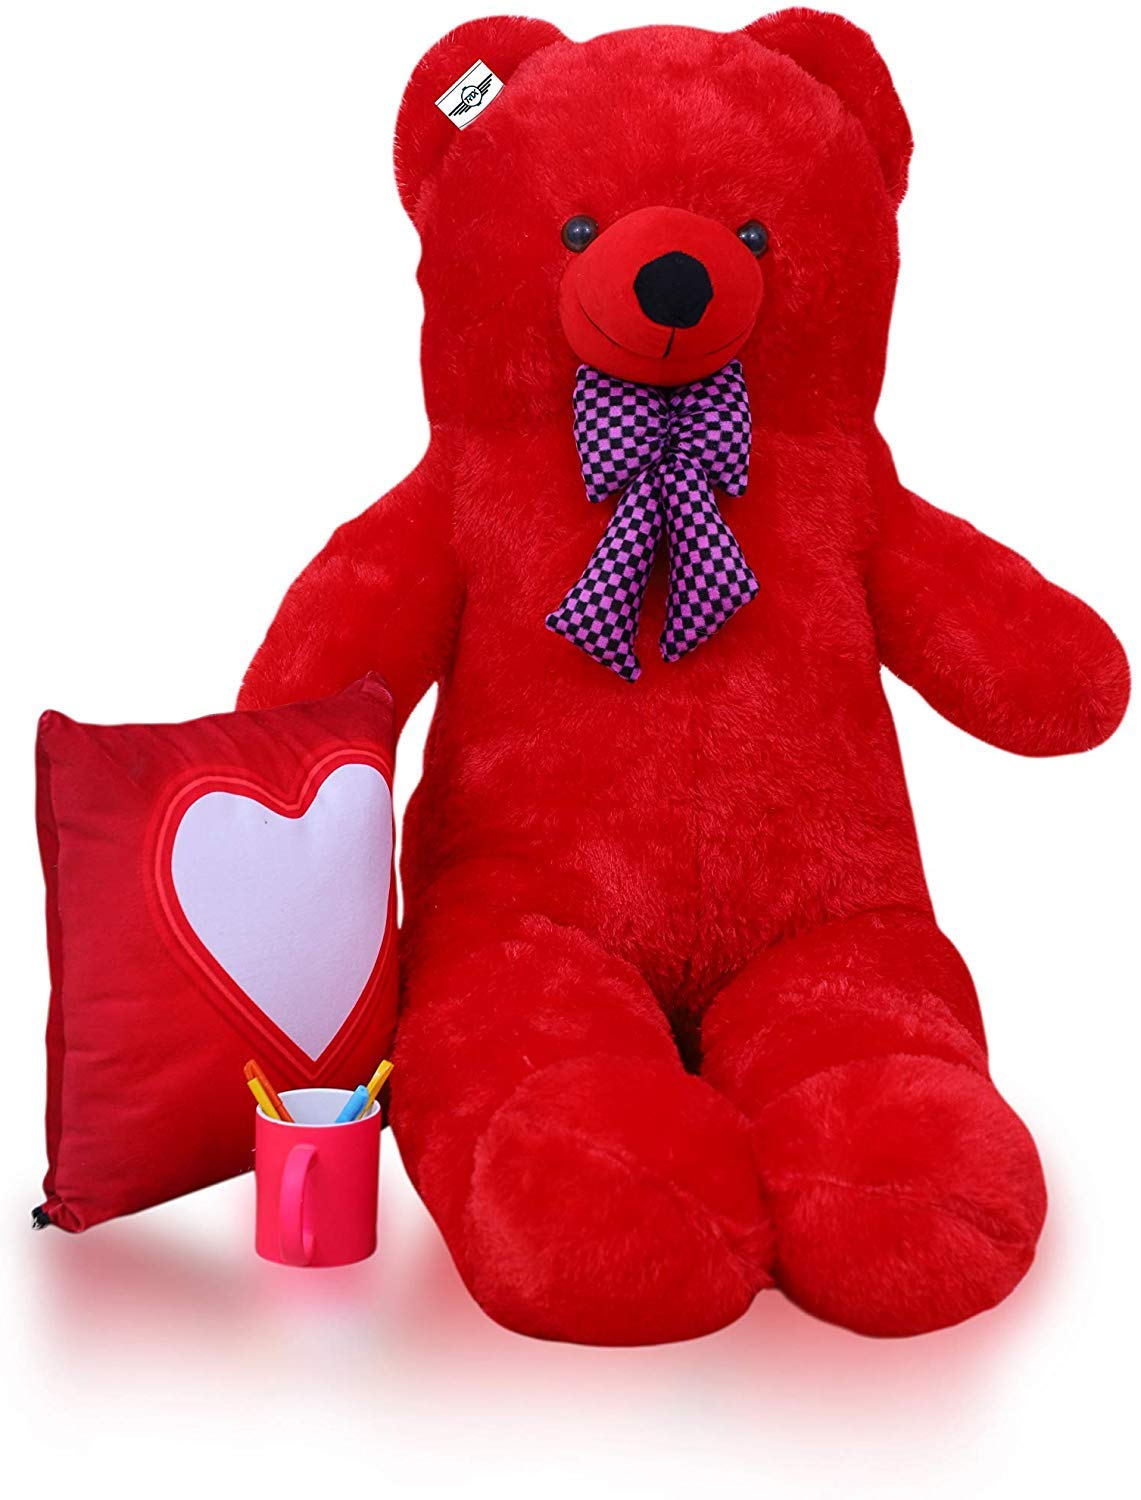 Red Teddy Bear 5 Feet, Buy Atif Teddy Bear With Neck Bow Red 5 Feet 152 Cm Online At Low Prices In India Amazon In